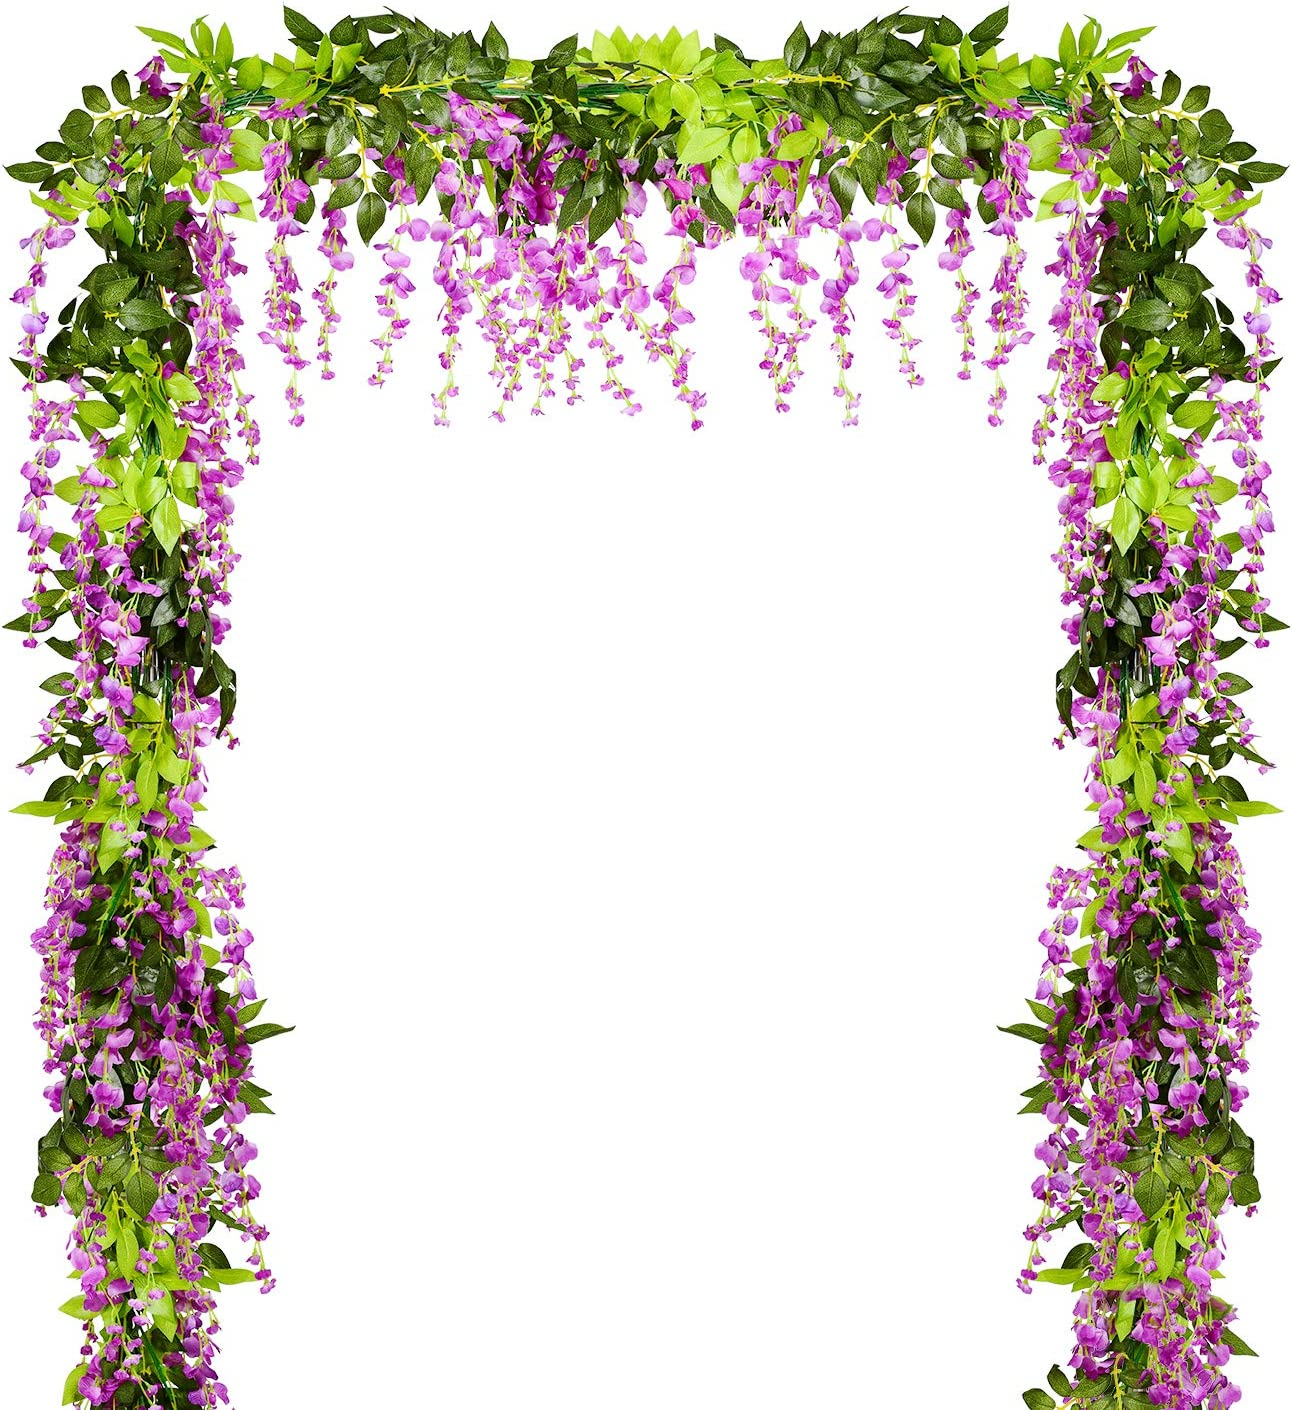 Lvydec Wisteria Artificial Flowers Garland, 4 Pcs Total 28.8ft Artificial Wisteria Vine Silk Hanging Flower for Home Garden Outdoor Ceremony Wedding Arch Floral Decor (Purplish Red)